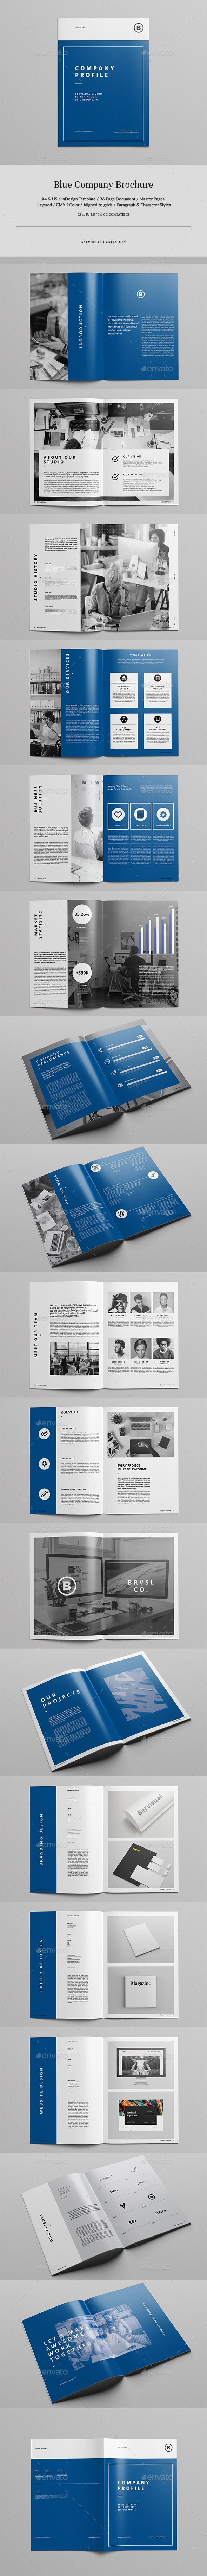 36 page InDesign brochure template designed with a unique, minimal and modern layout. Available in 2 sizes, A4 and US letter. This item created for showcase portfolio, works, estimate, proposal, company profile and other related projects. Can be used for individuals or agency/studio. FILES INCLUDED INDD: Compatible files for Adobe InDesign CS6 / CC IDML: Compatible files for Adobe InDesign CS4 / 5 / 5.5 PDF FEATURES A4 & US Letter Size Adobe InDesign file 36 page document Aligned to grids…